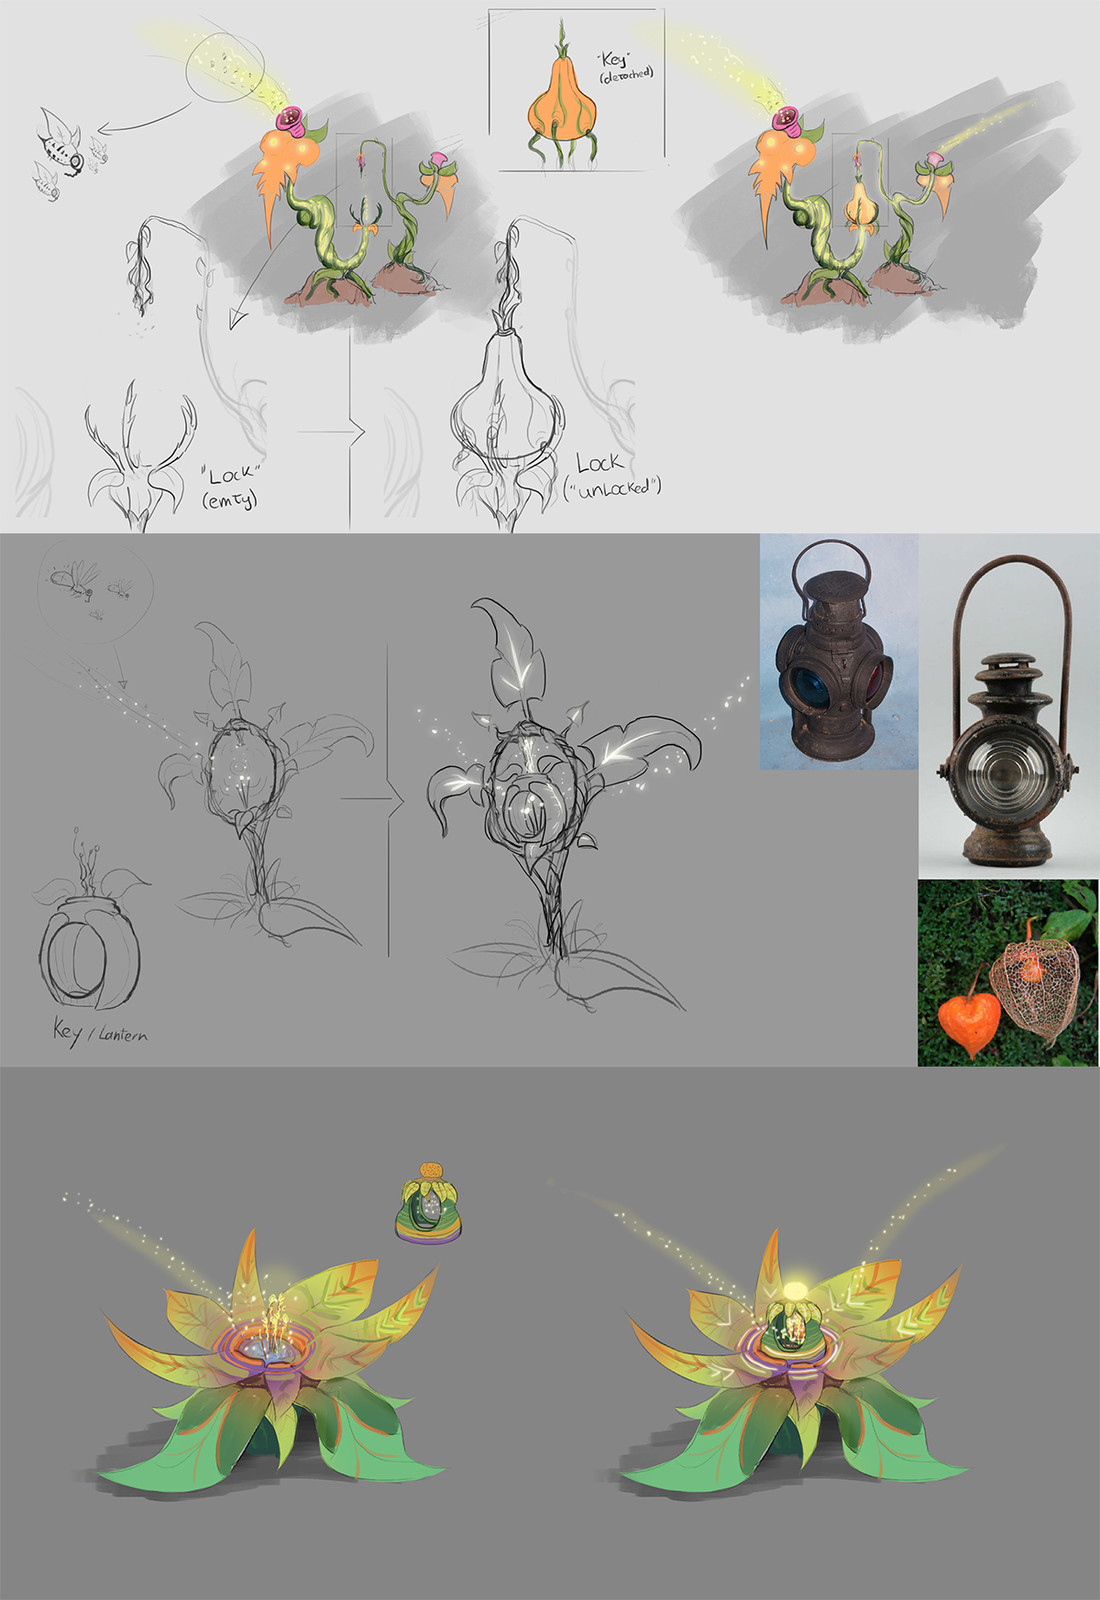 Rough sketches. I made these in constant communication with the other team members to quickly come up with a design that would work for the gameplay. We needed a plant that would function as some type of 'lock' where you could place a key-type object in.